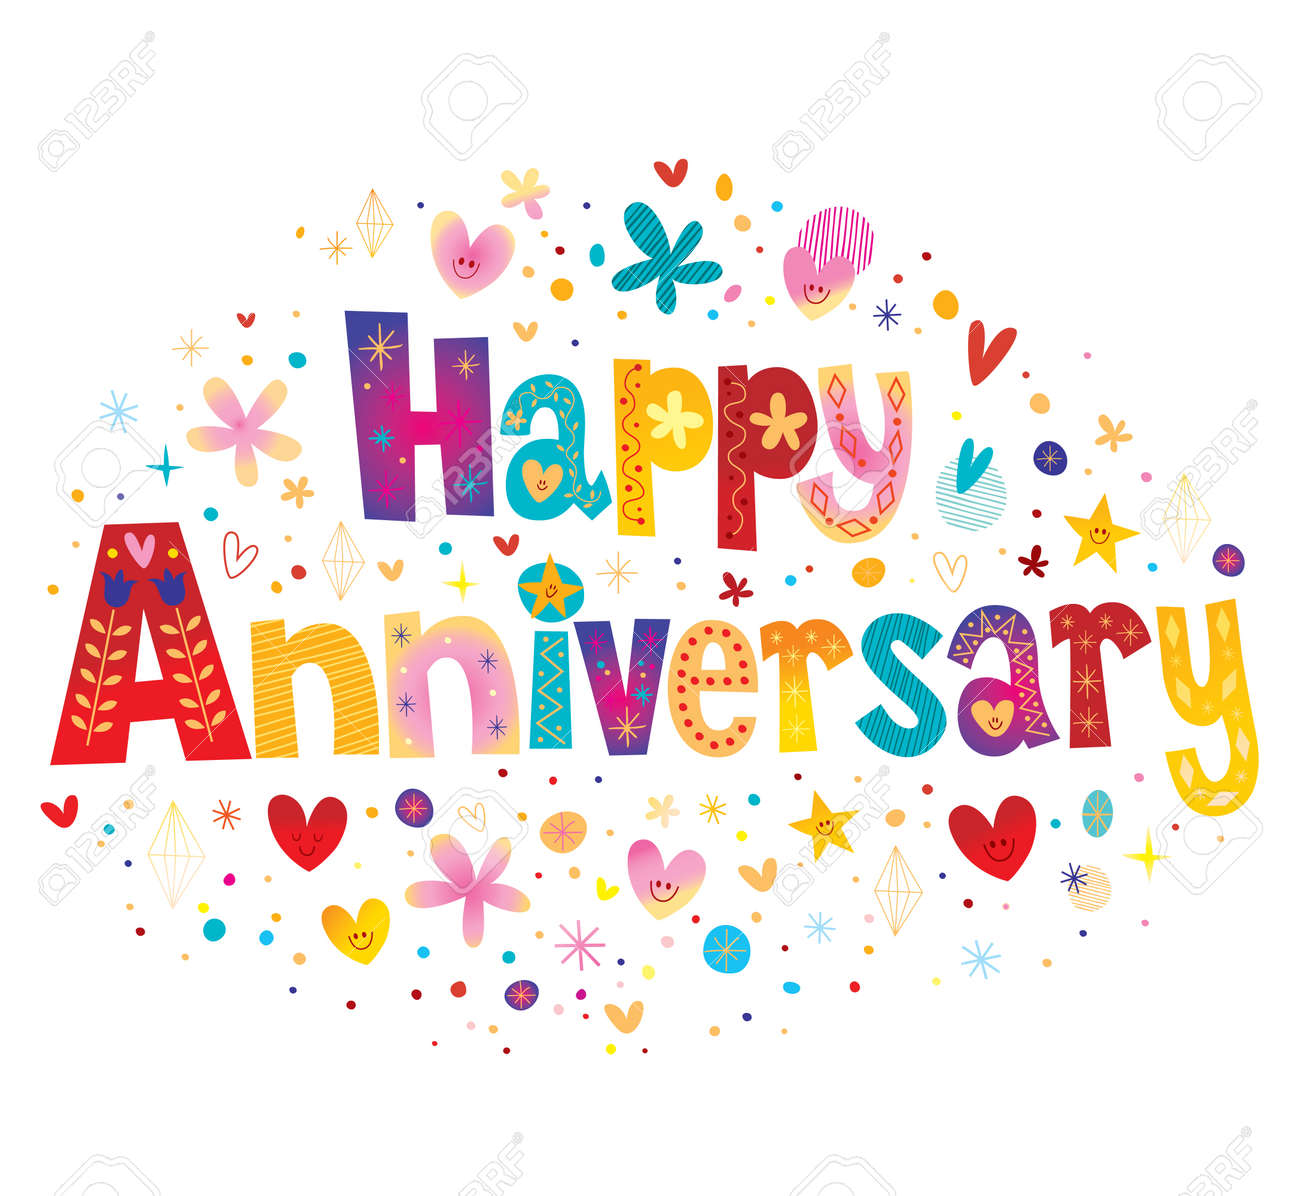 Happy Anniversary greeting card with decorative lettering text design - 134002650